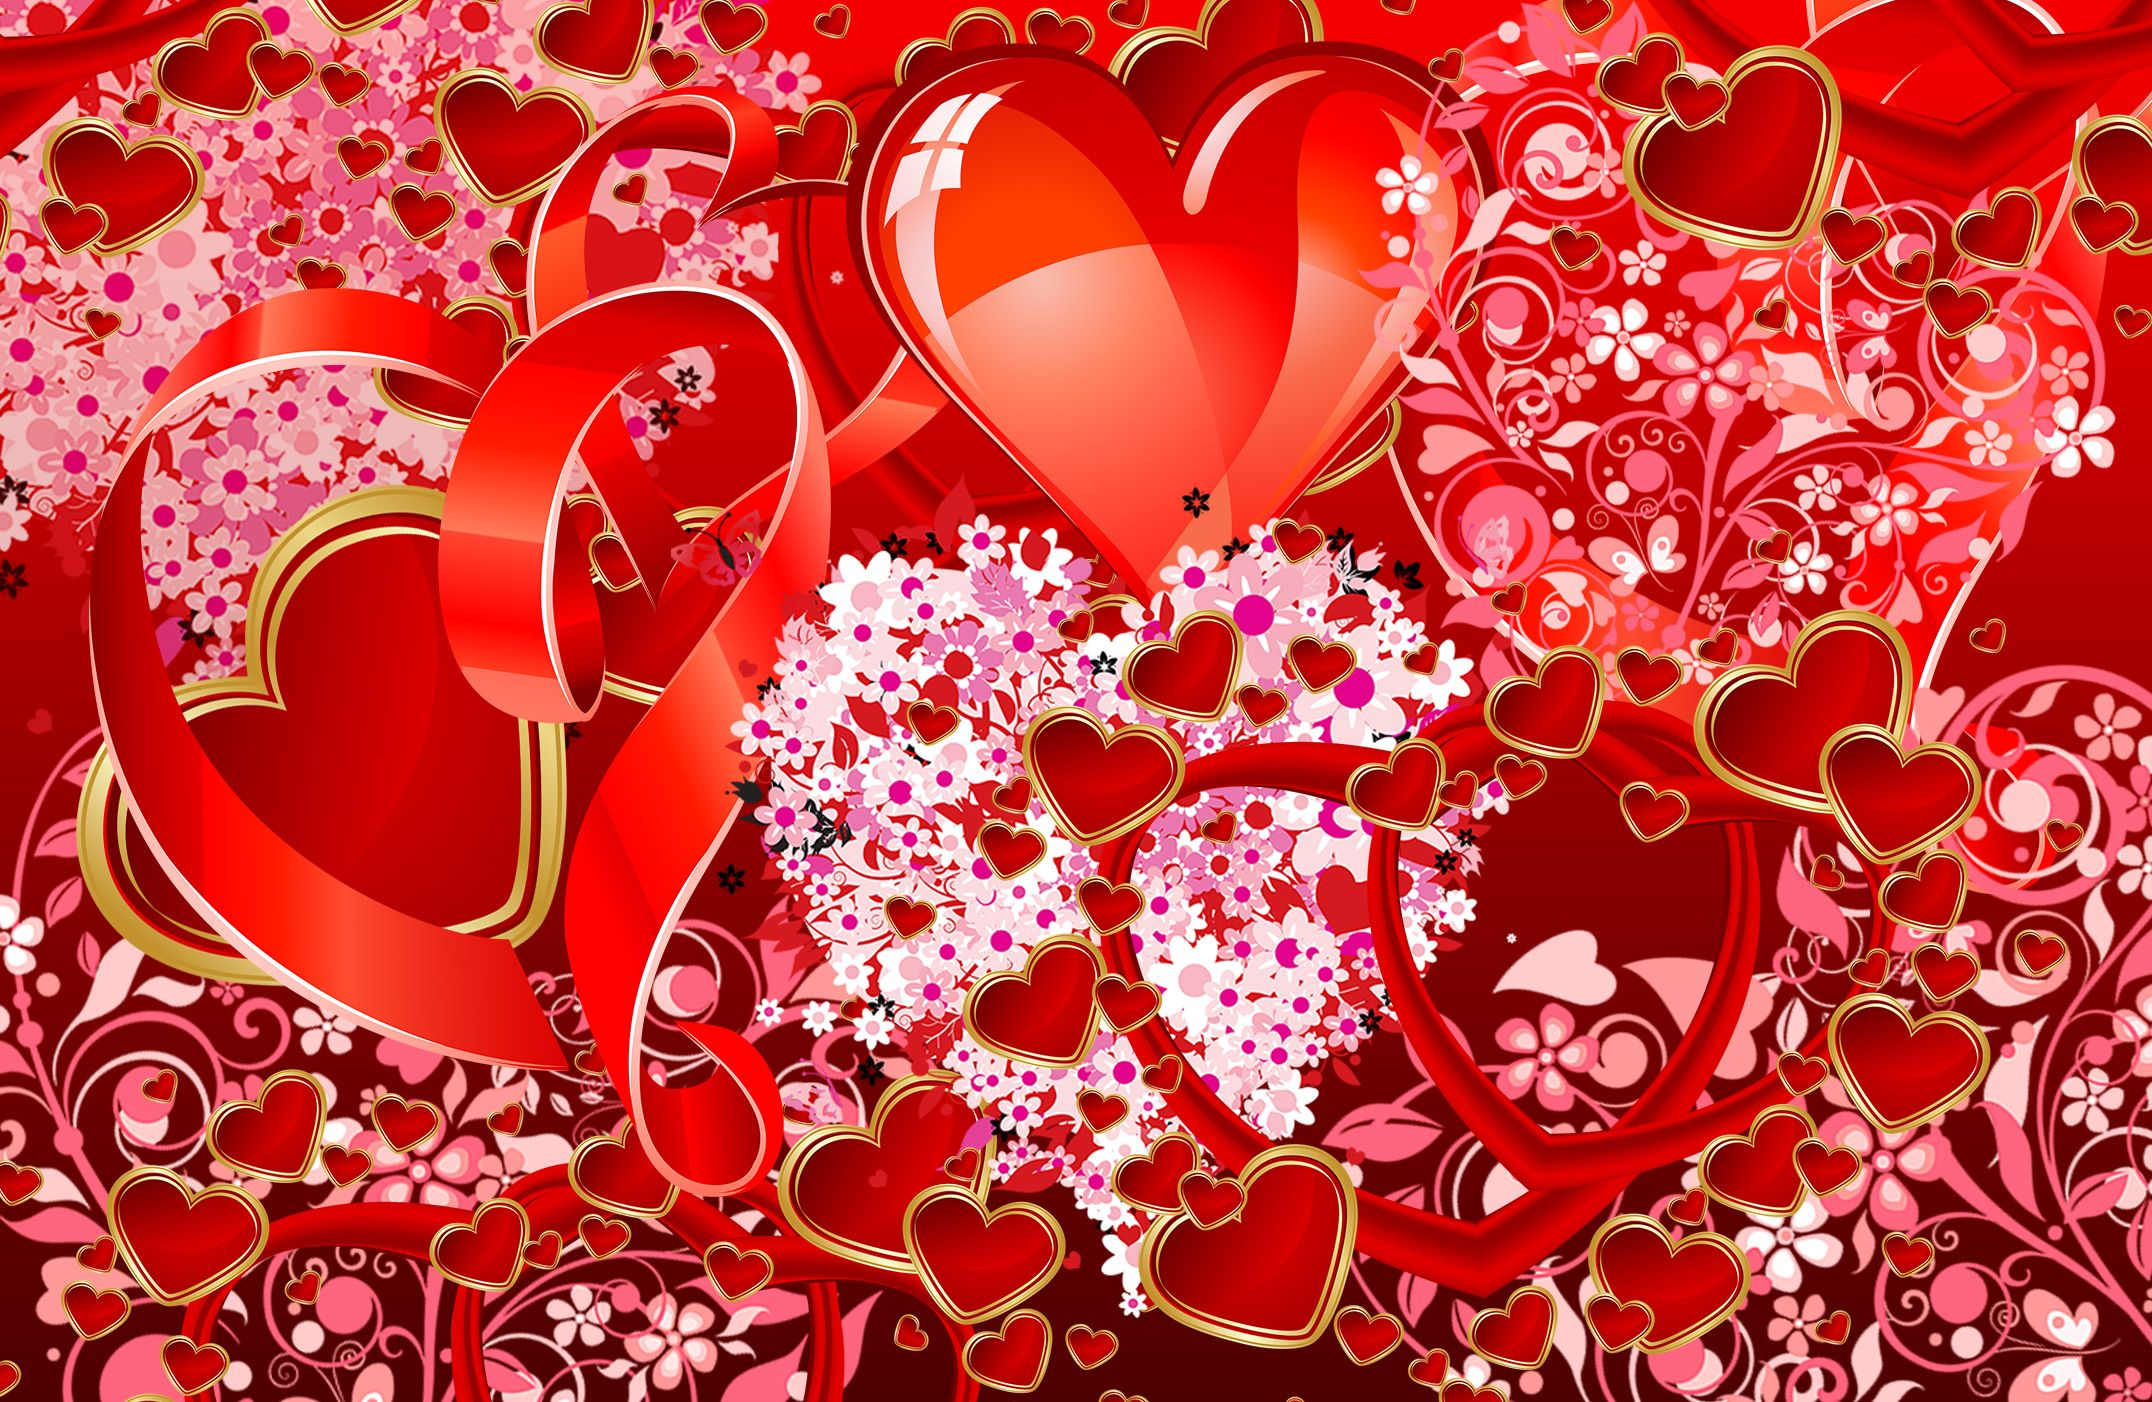 Different Types of Hearts for Valentine's Day